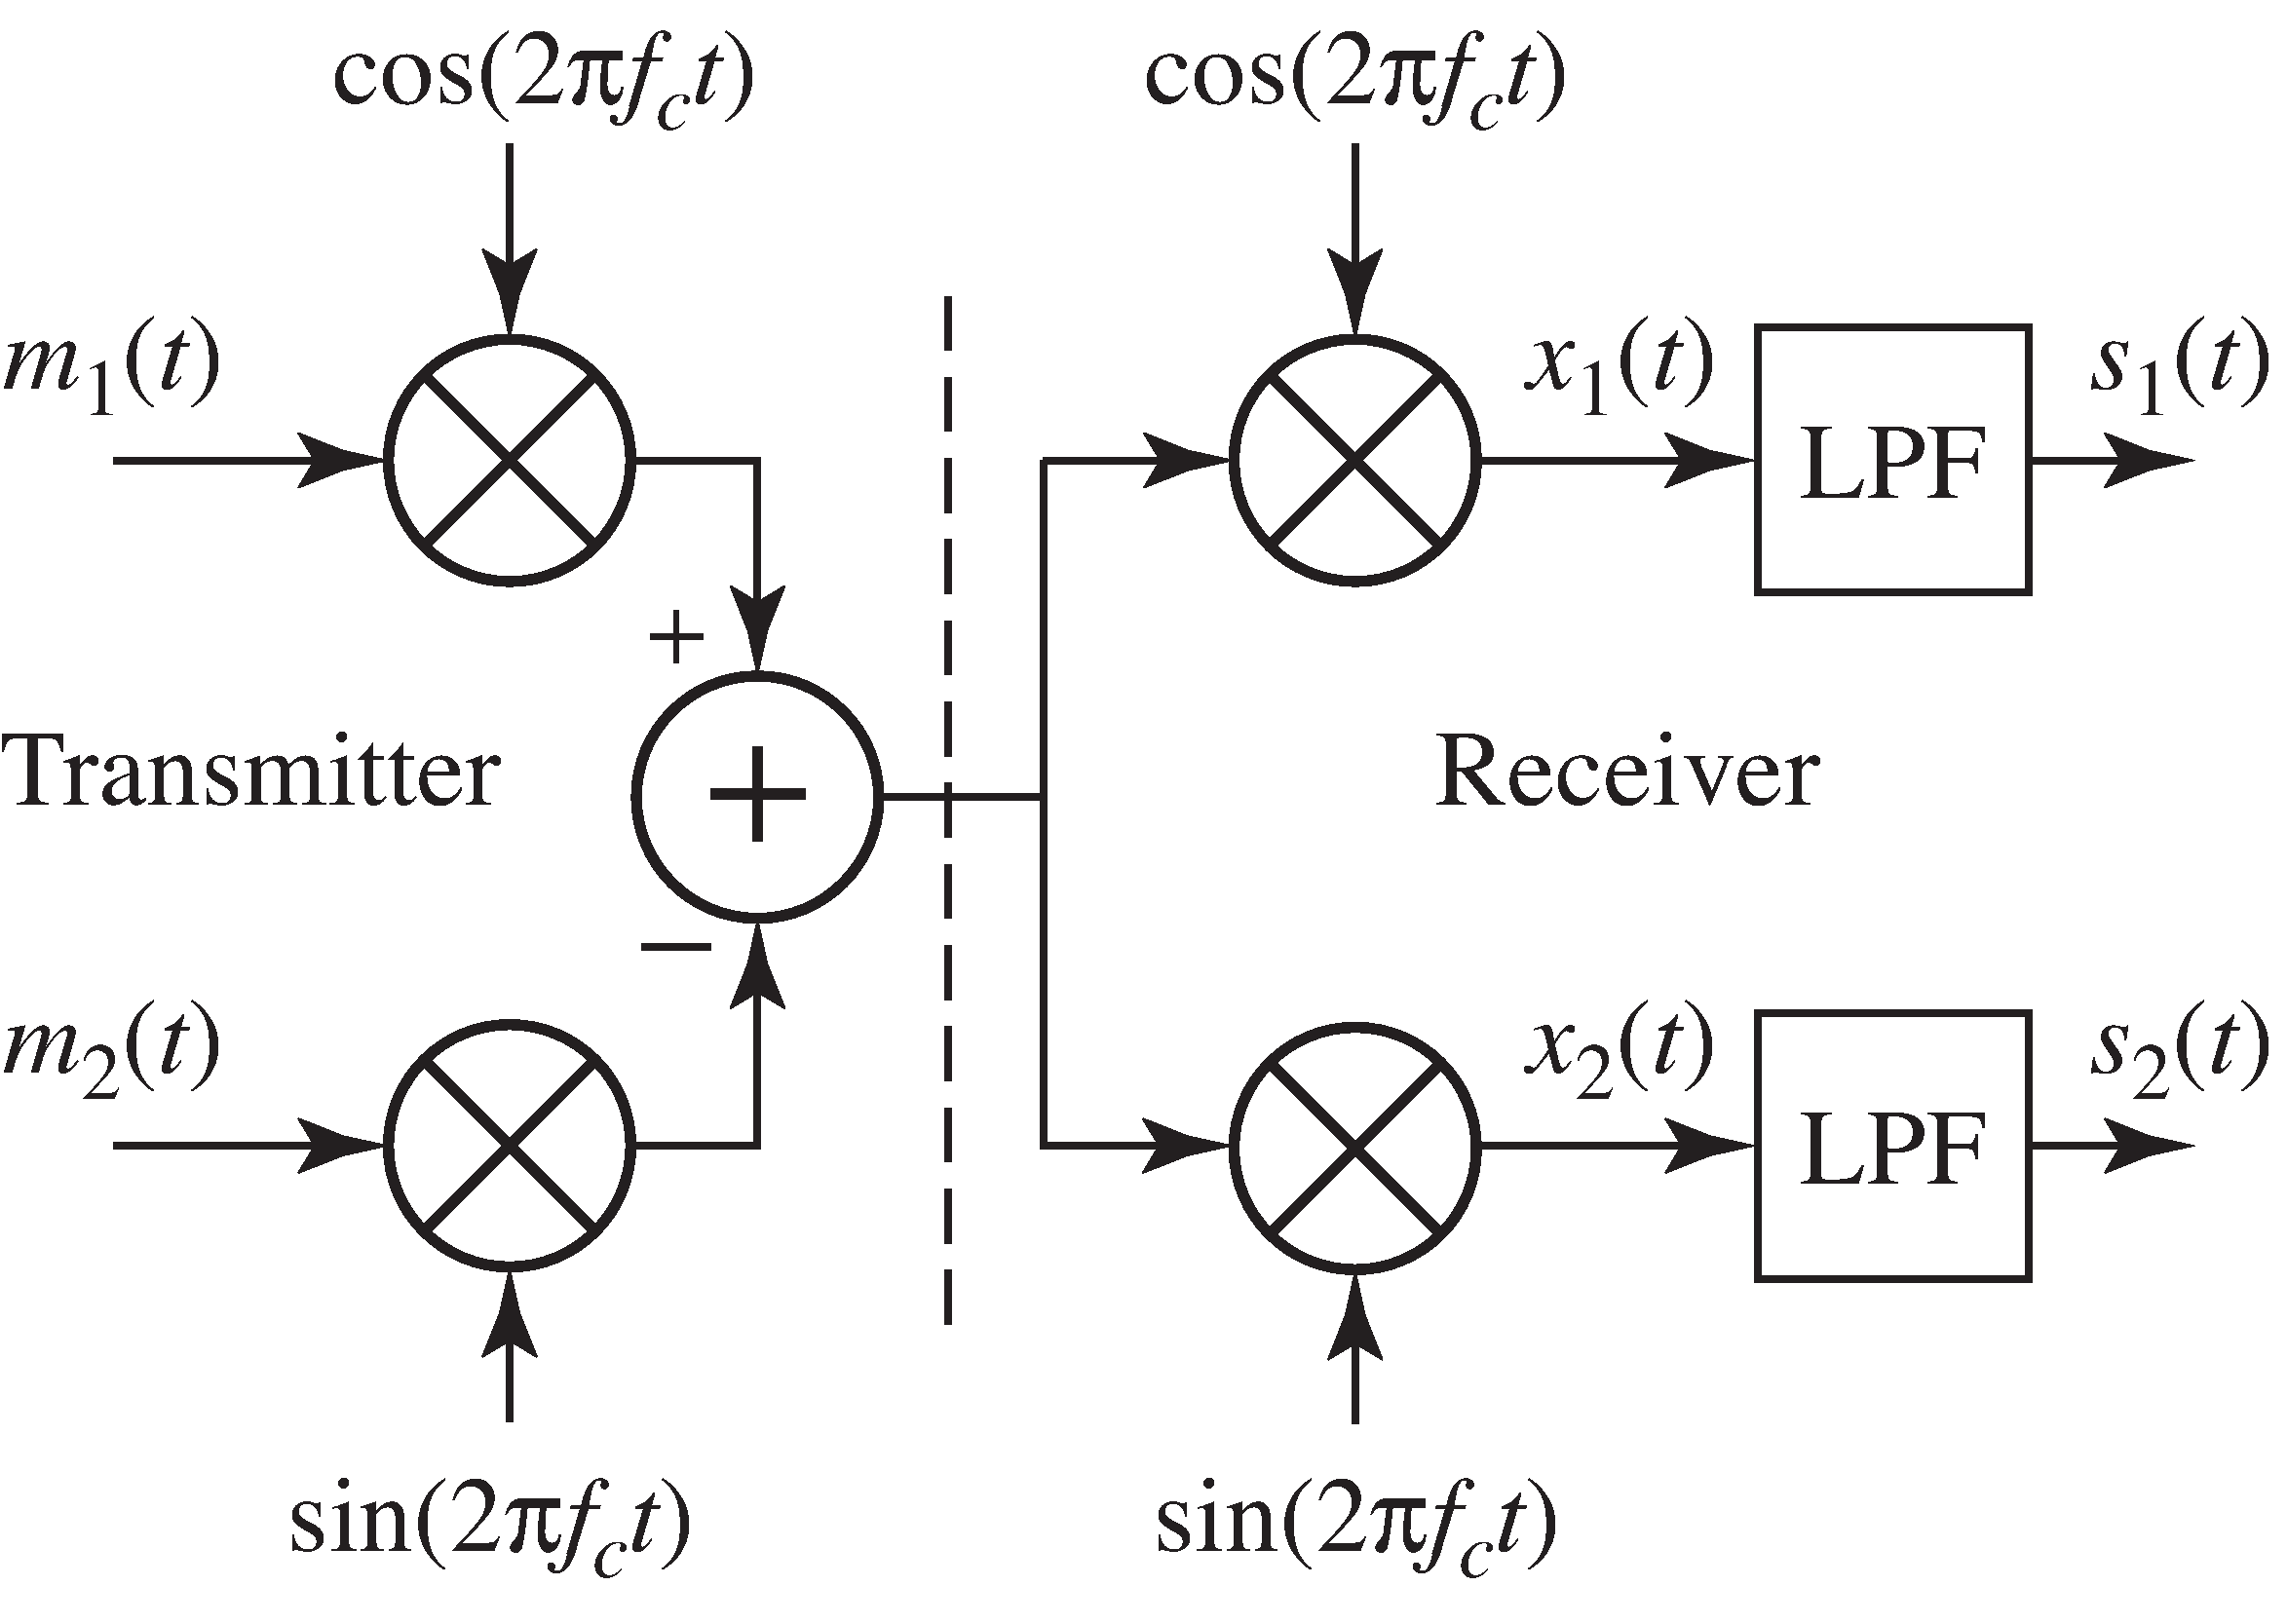 Analog Demodulation Quadrature Fm Demodulator Circuit In A Modulation System Two Messages M 1t And 2t